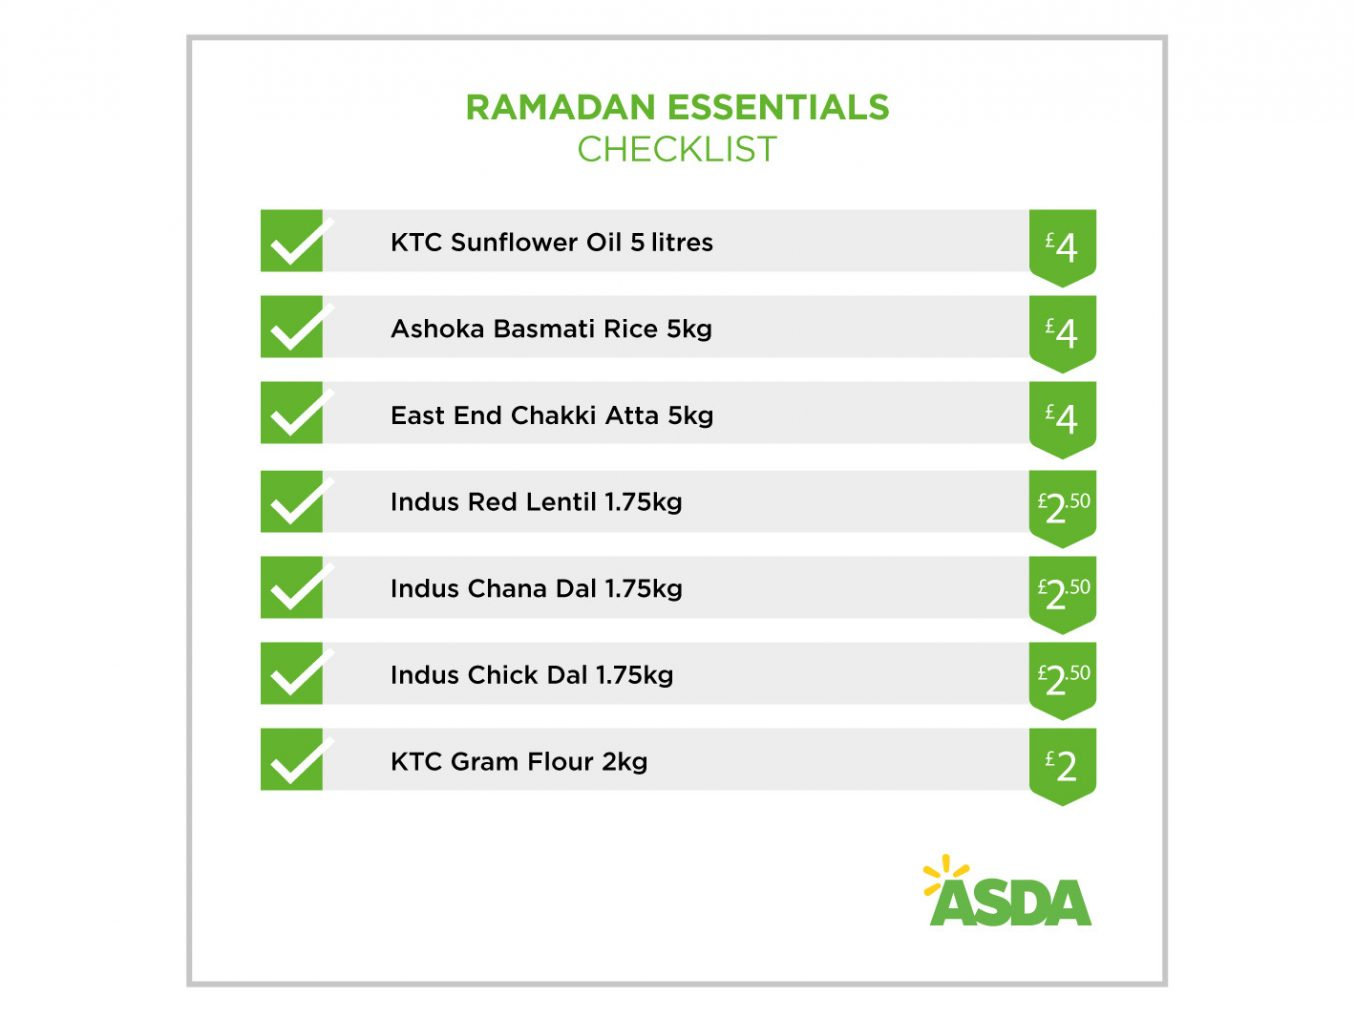 Asda partners Mums this Ramadan in stocking up the essentials in advance!